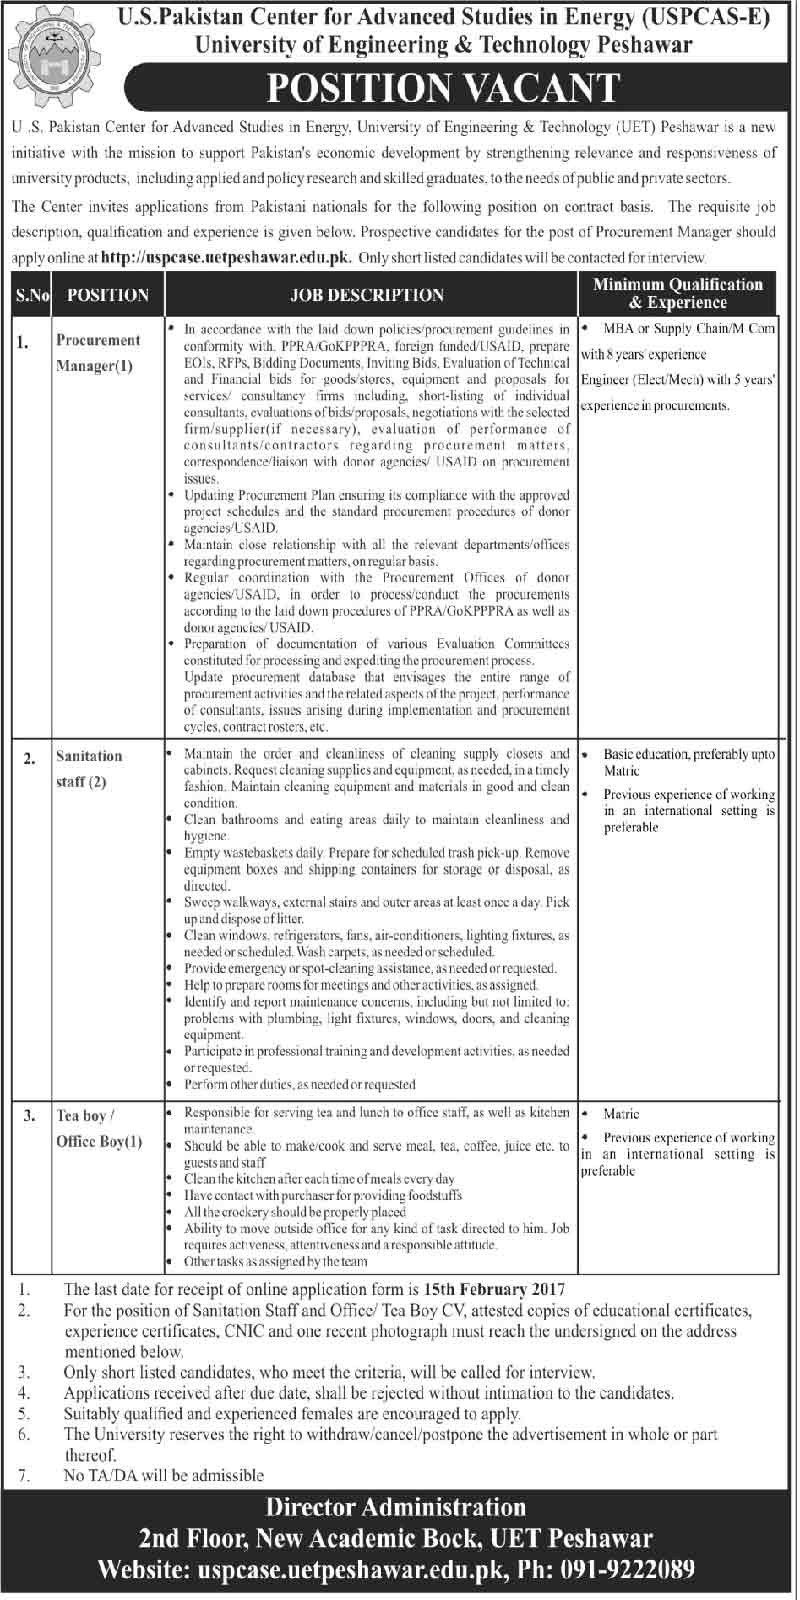 US Pakistan Center for Advanced Studies in Energy UET Peshawar jobs